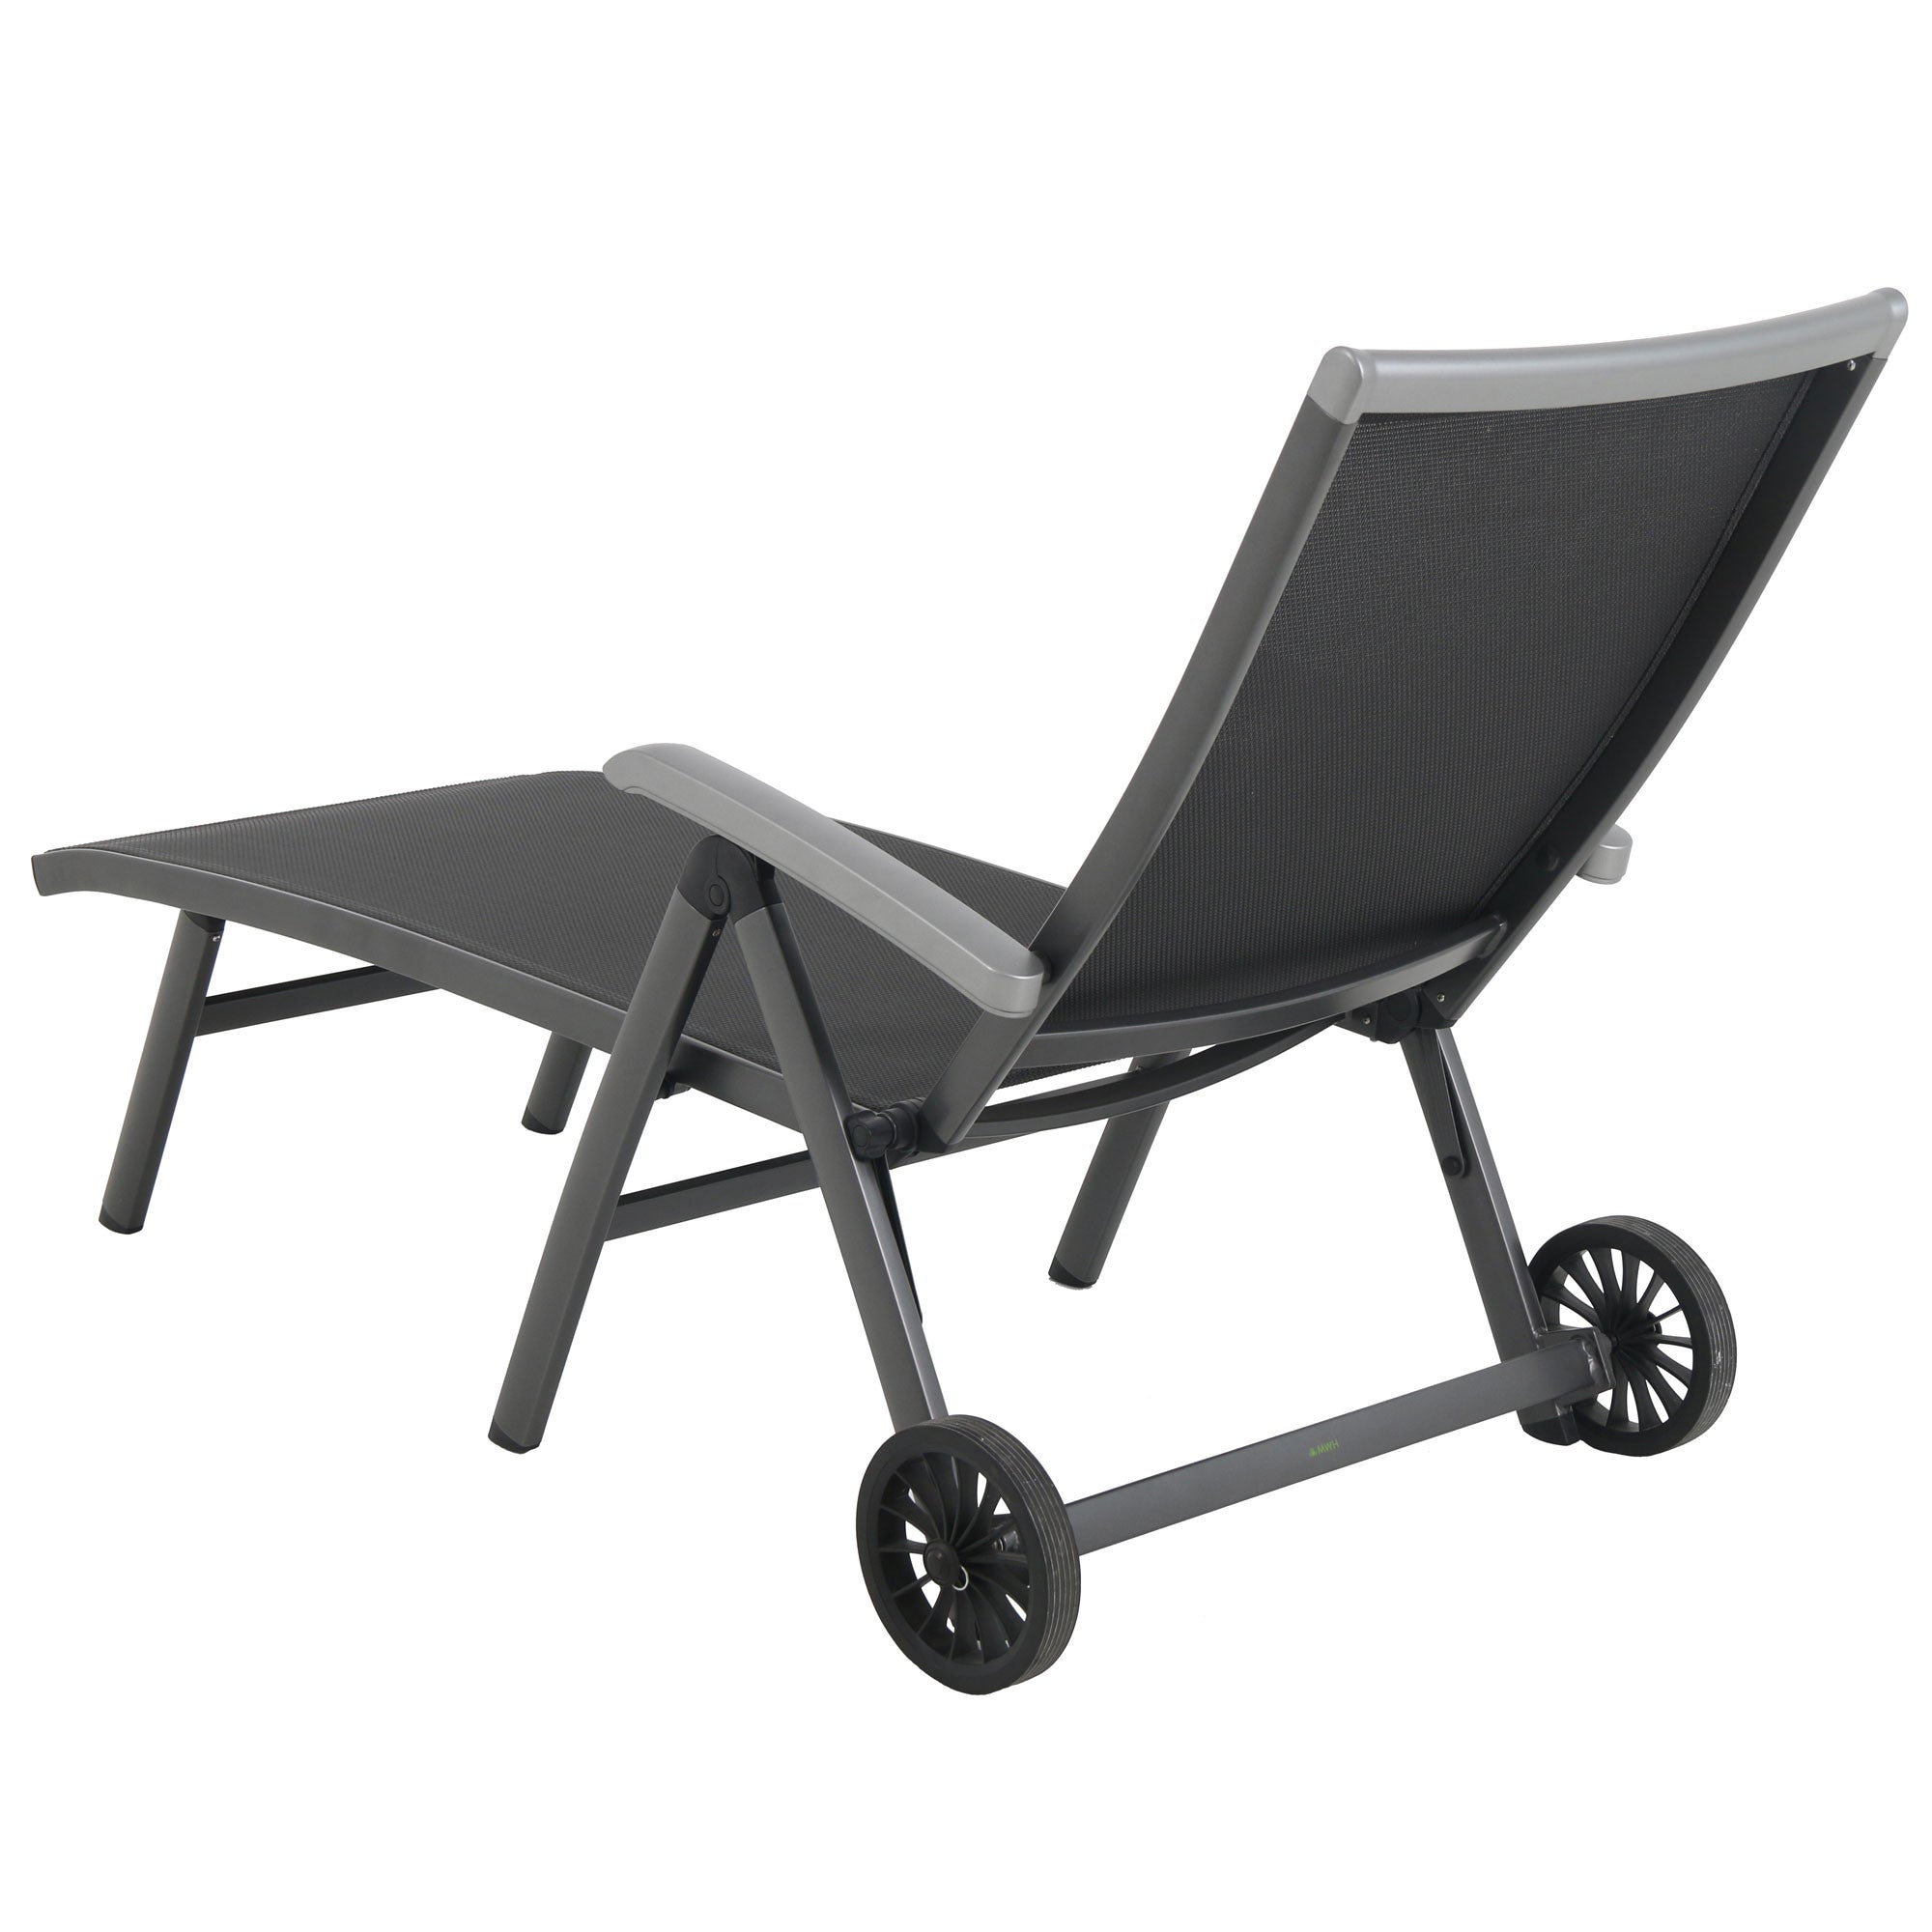 Royal Garden Ludwig Aluminum Folding Chaise Lounge Chair